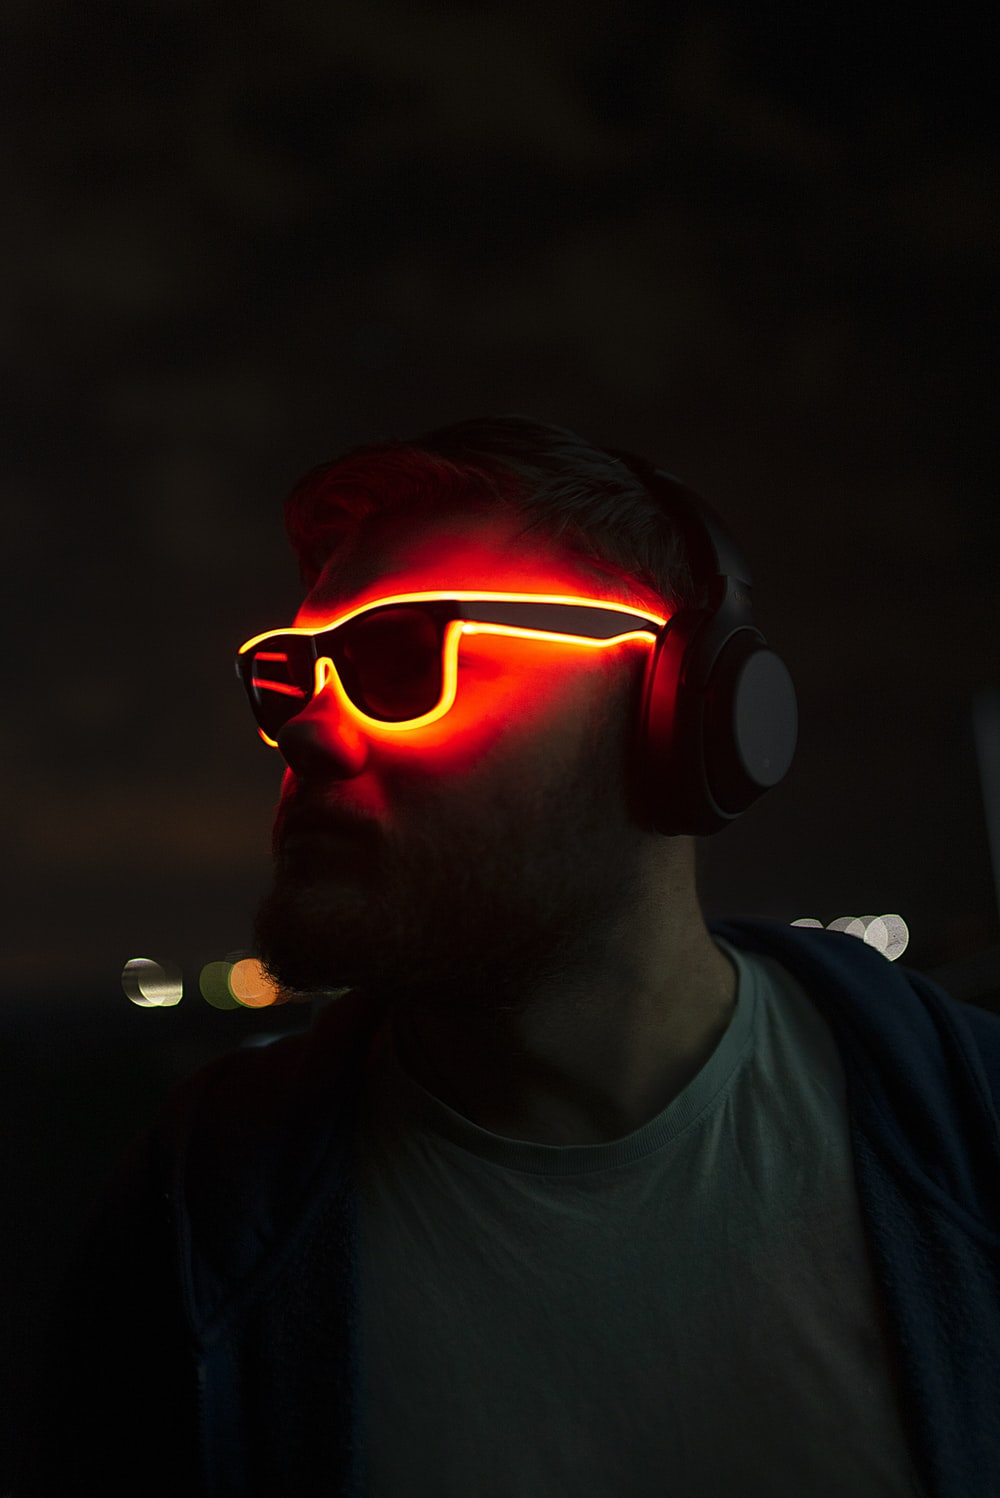 man in black crew neck shirt wearing red goggles